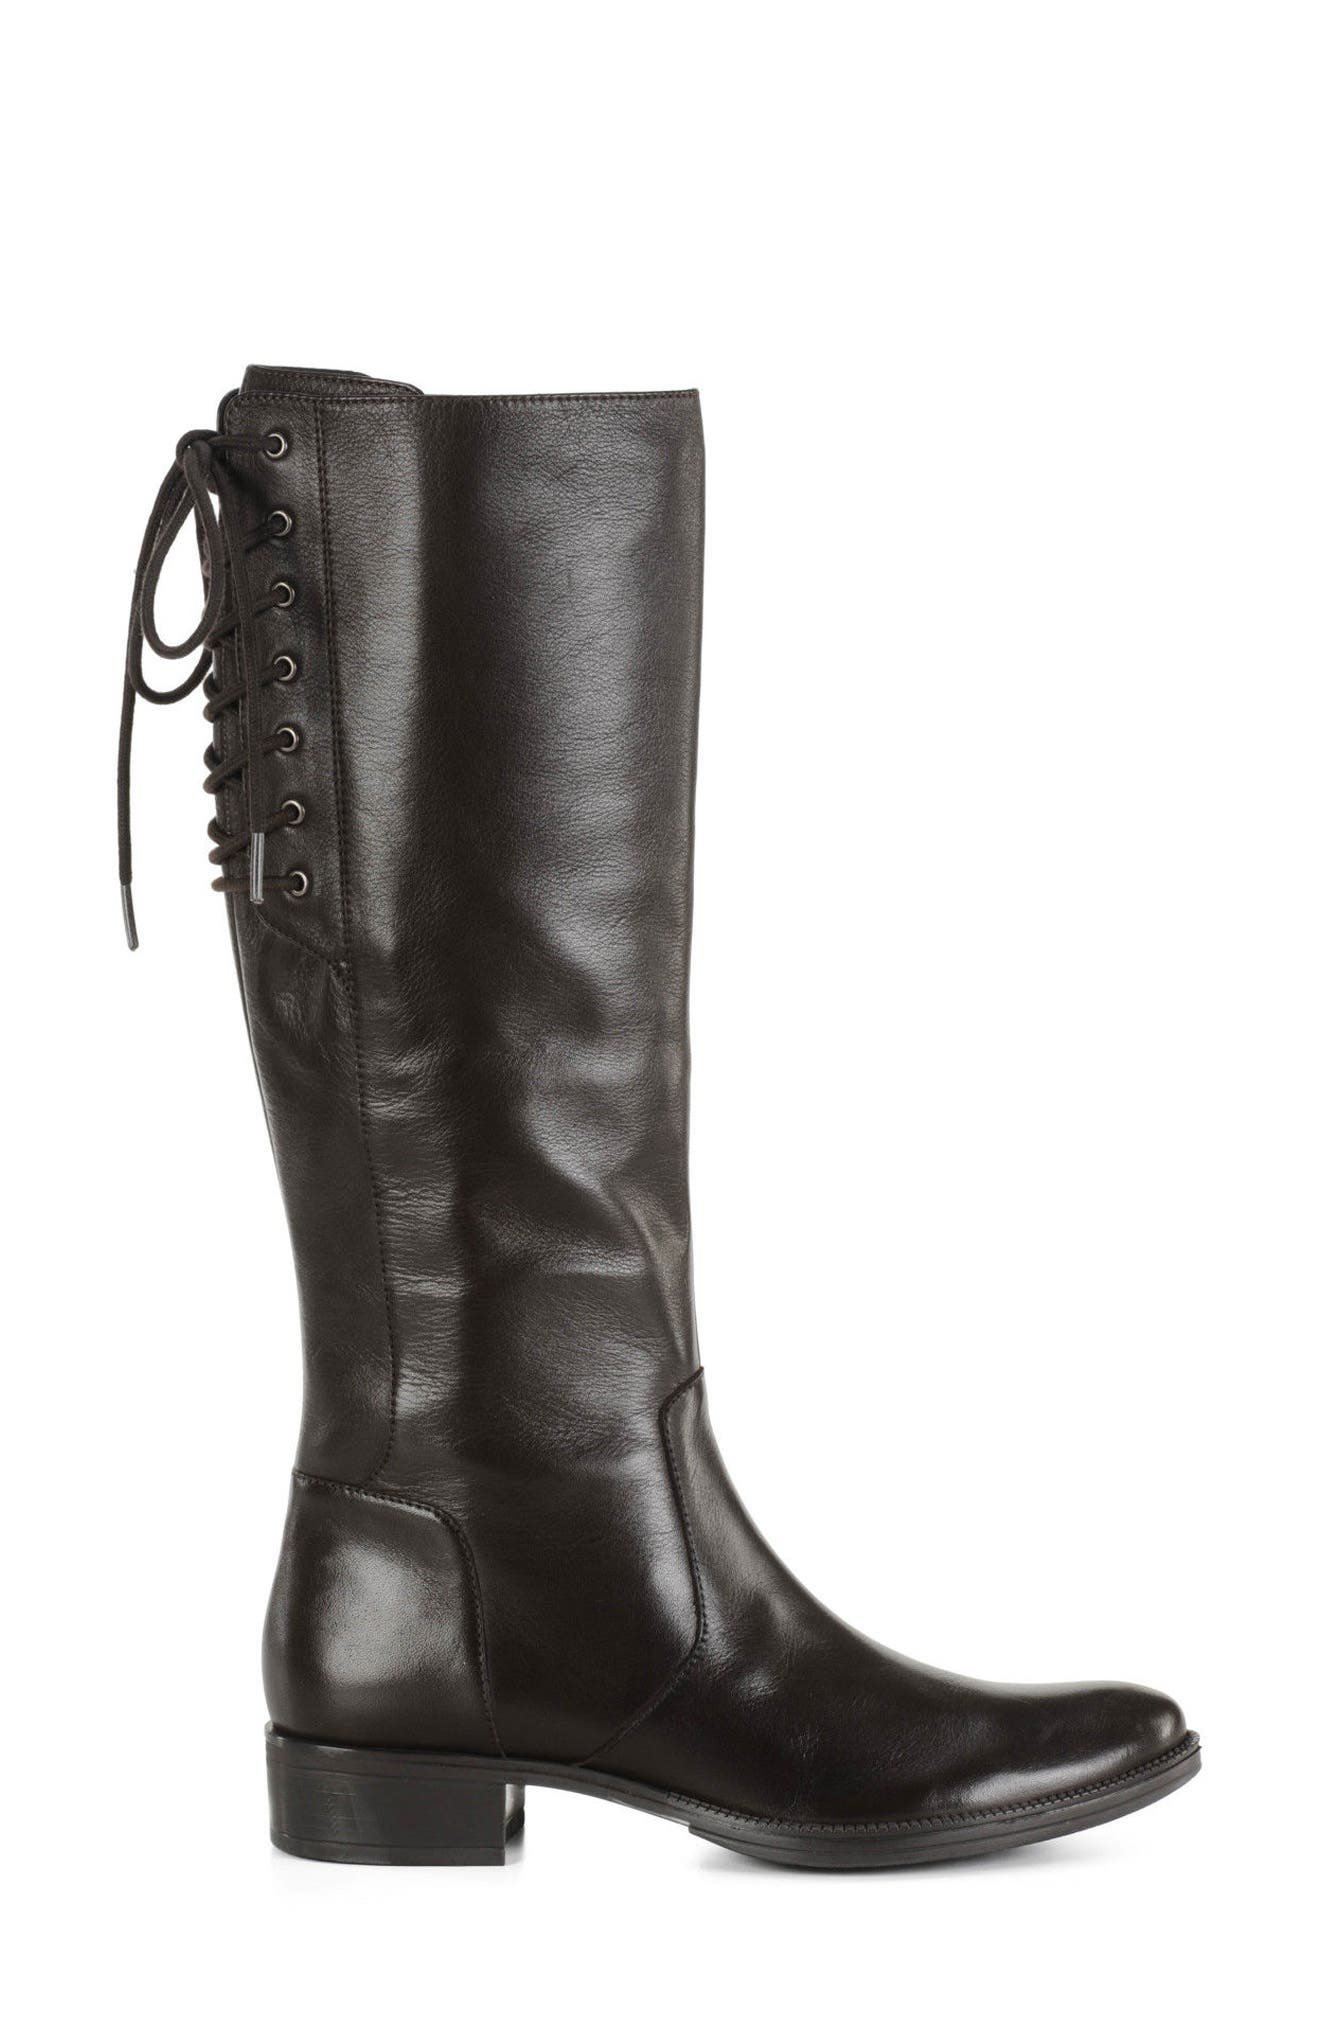 Mendi Tall Boot,                             Alternate thumbnail 3, color,                             Coffee Leather